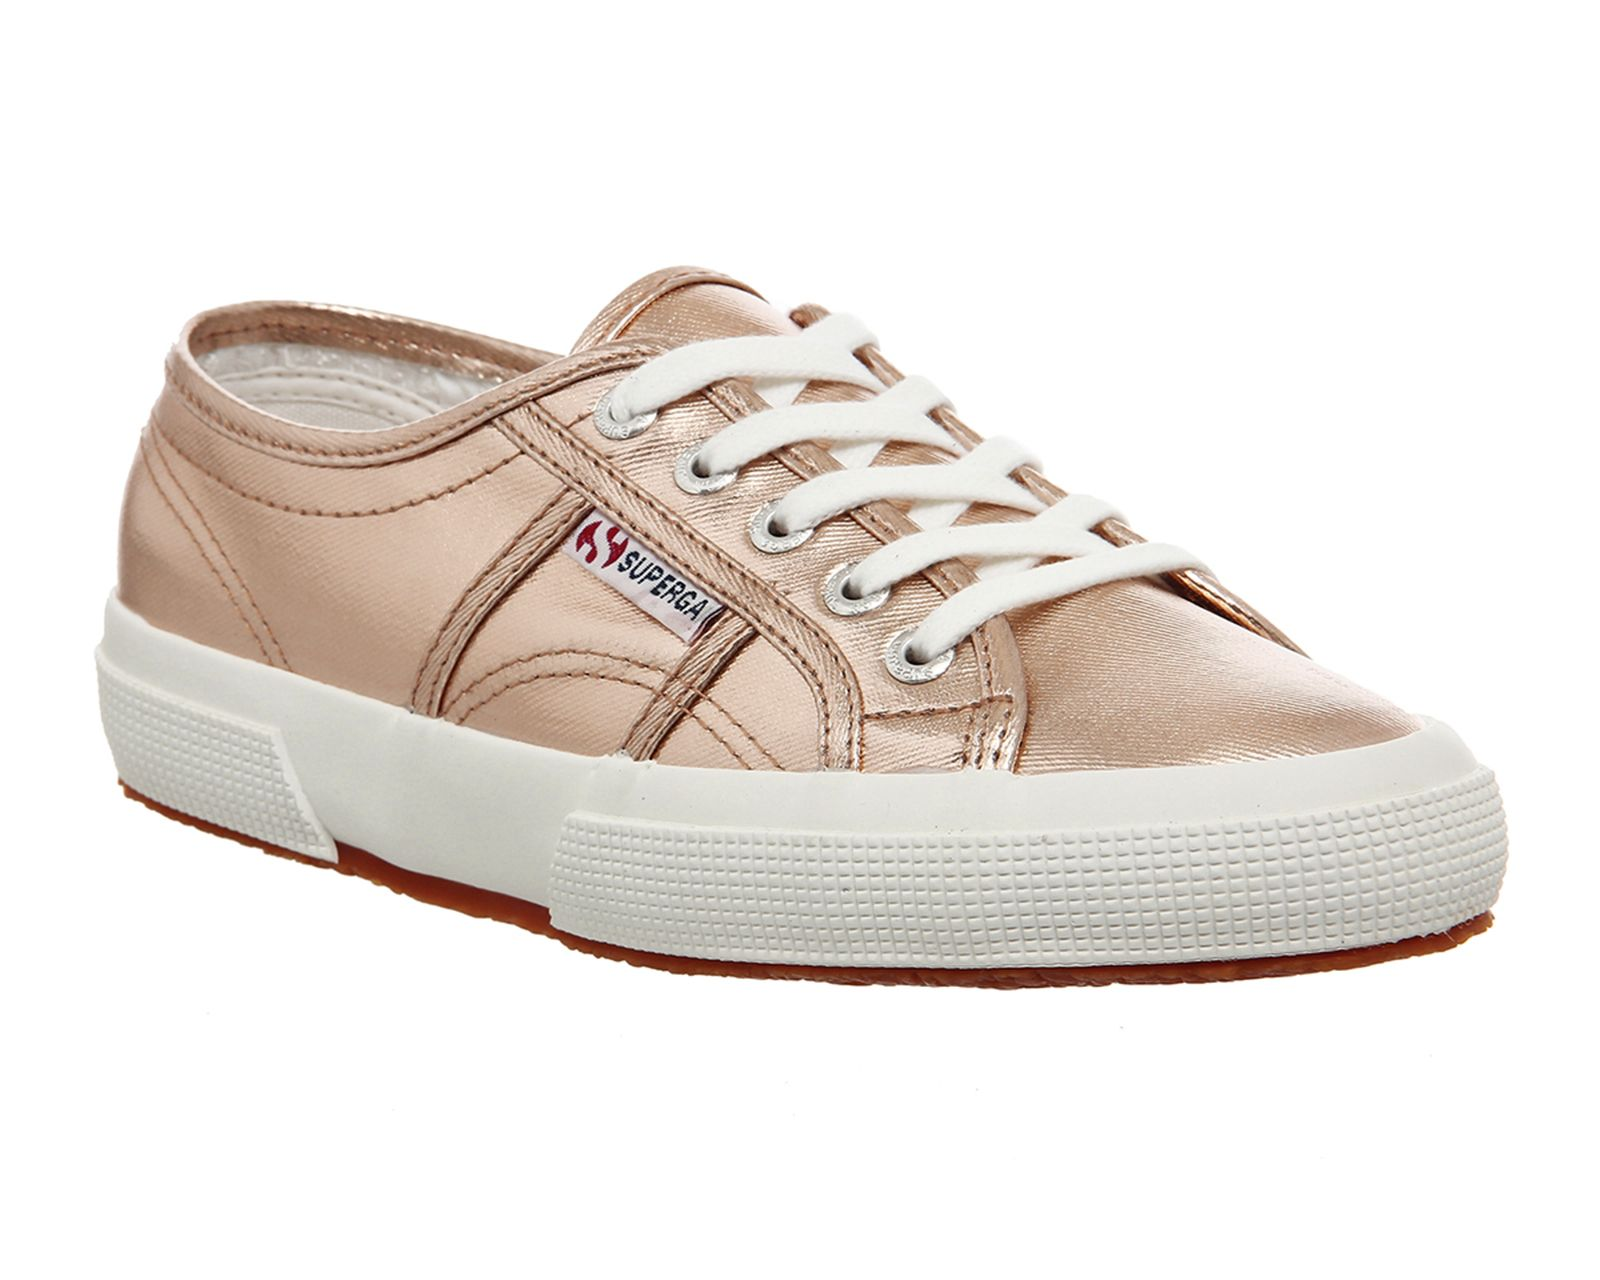 Buy Rose Gold Cometu Superga 2750 Trainers from OFFICE.co.uk.